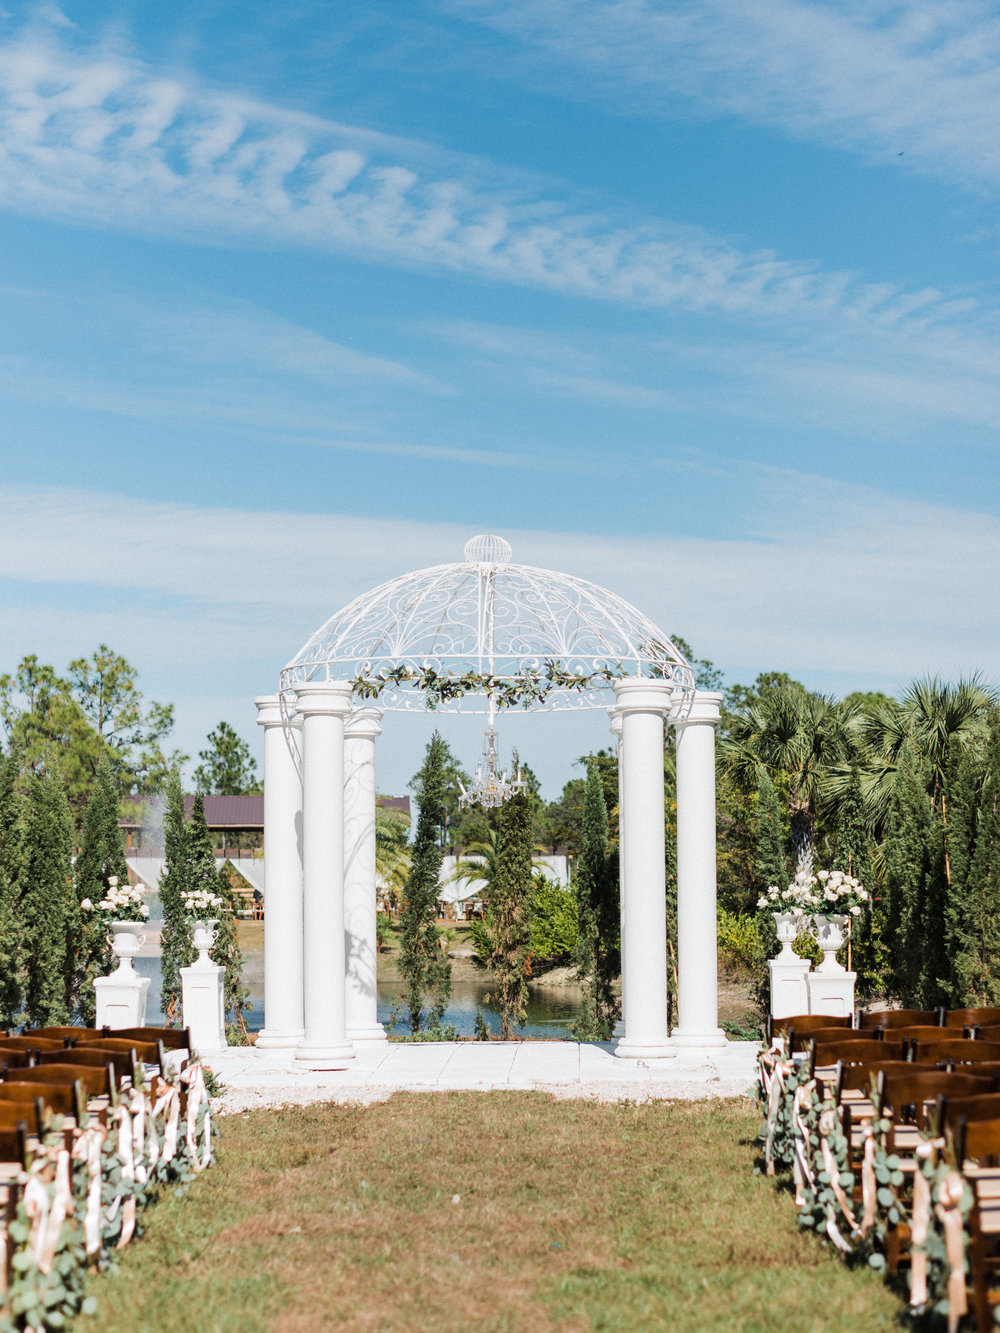 florida-wedding-fort-myers-la-casa-toscana-outdoor-ceremony-winter-wedding-brown-chairs-white-gazebo-planned-by-mostly-becky-weddings-traveling-wedding-planner-destination-wedding-lakeside-bridal-portraits-bride-groom-black-tie-tux-formal-wedding